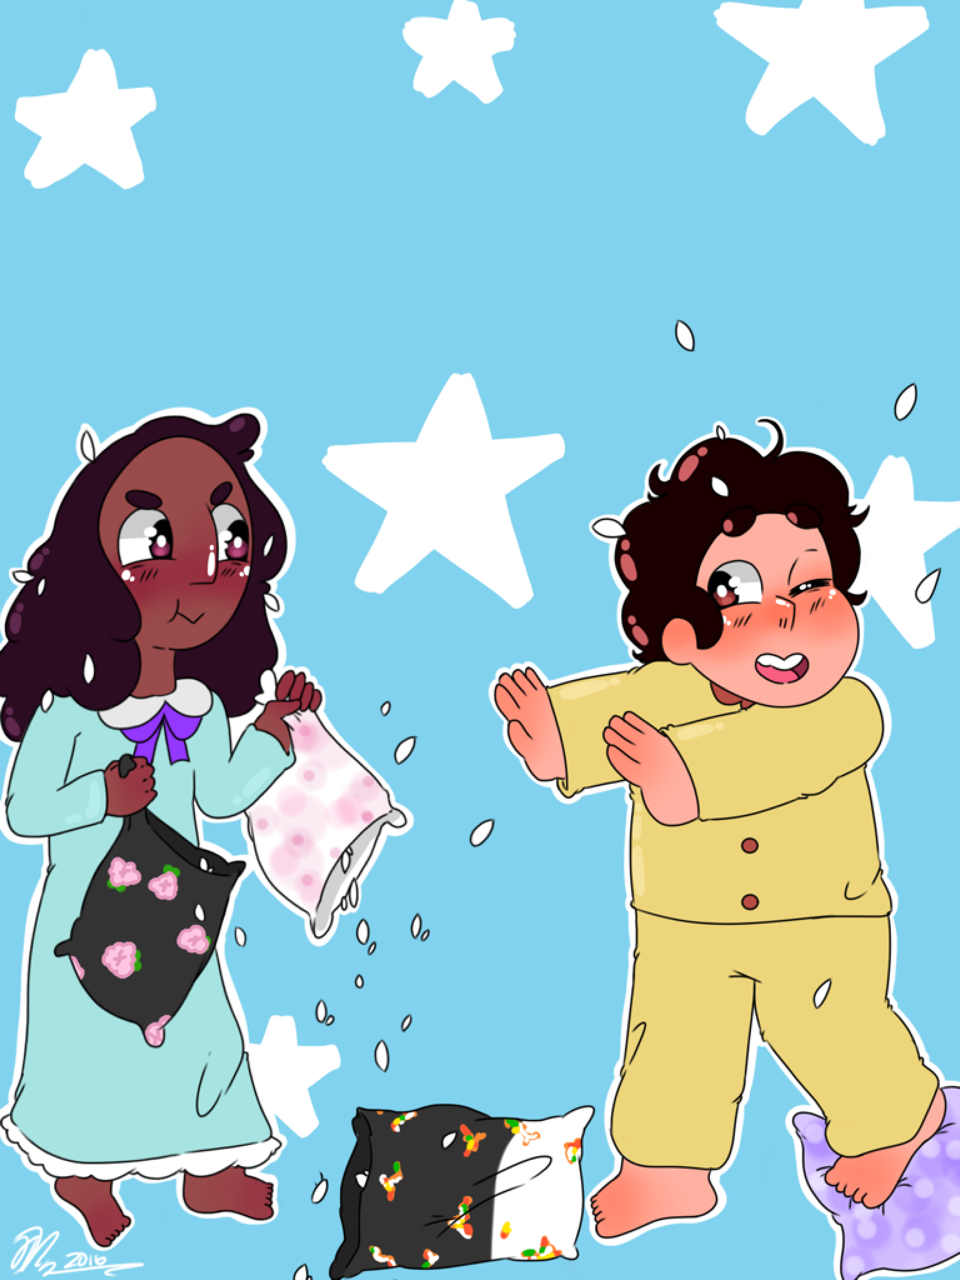 Steven never stood a chance against the pillow fight champion⭐️ ( I feel now more than ever people need positivity, and lots of wholesome pure™ Connverse 💖)